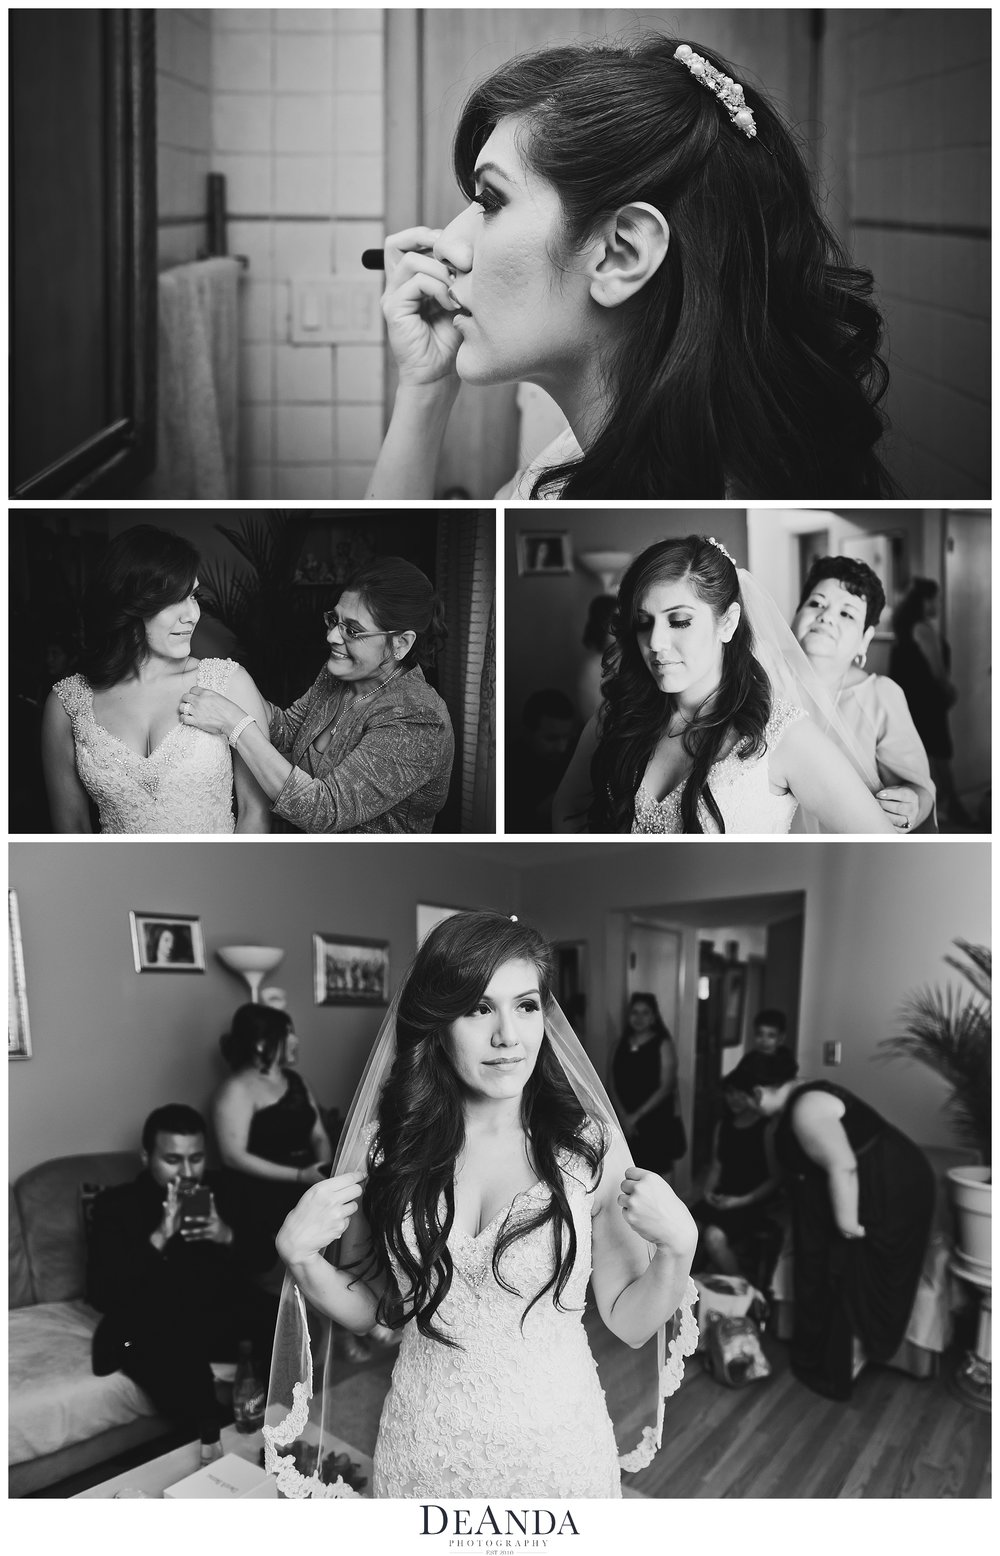 bride getting ready at her home in black and white